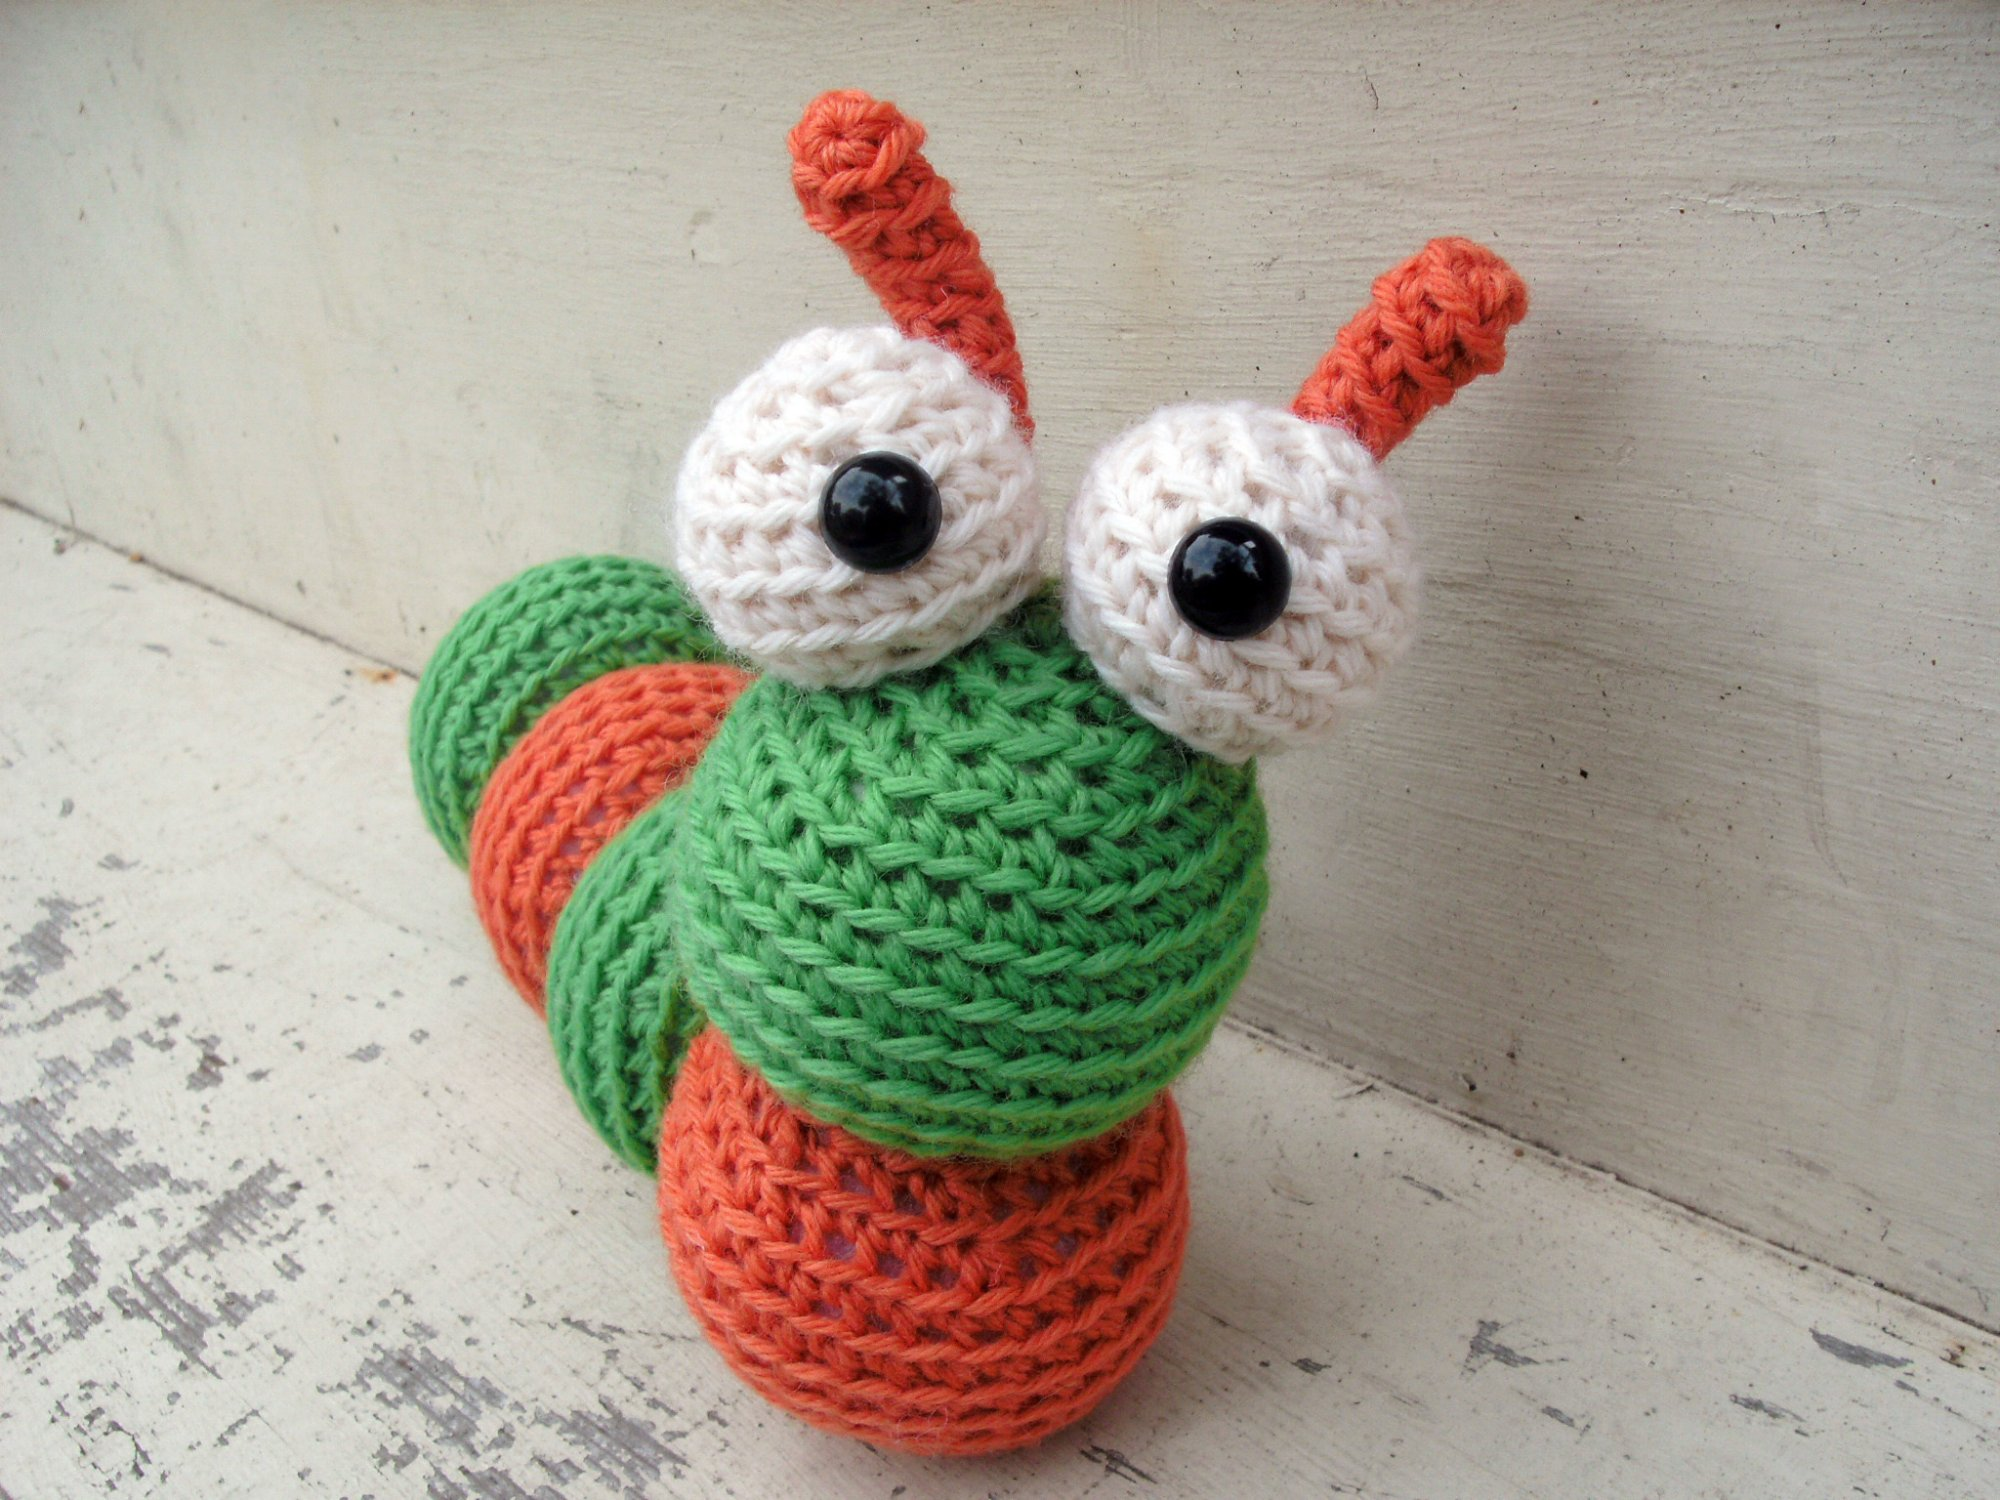 Amigurumi Knitting Patterns For Beginners : Crochet a Cutie: Amigurumi for Beginners